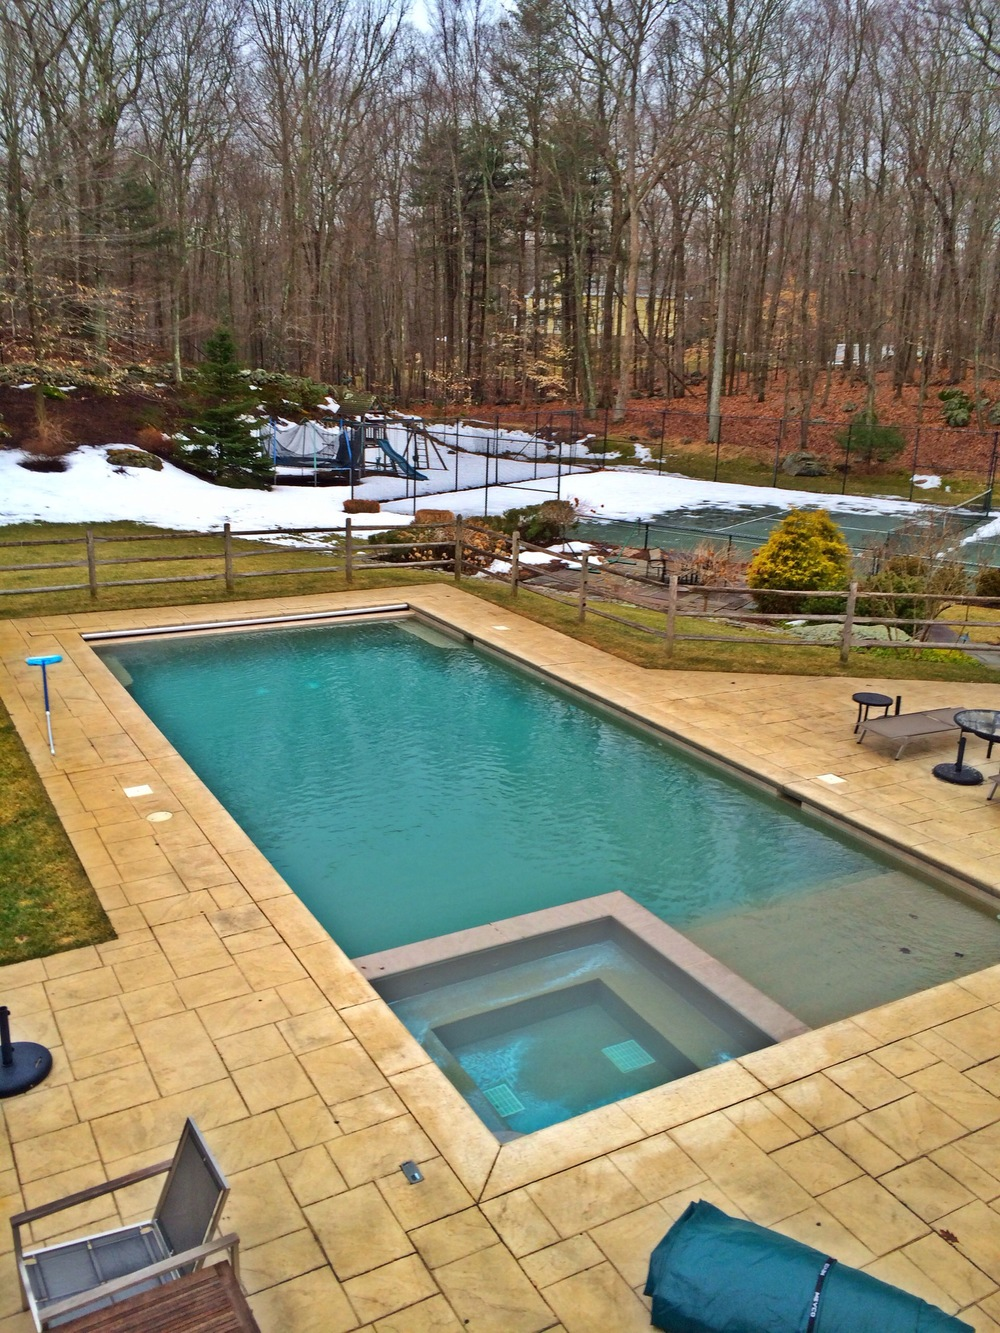 New swimming pool construction in fairfield county ct for Swimming pool construction